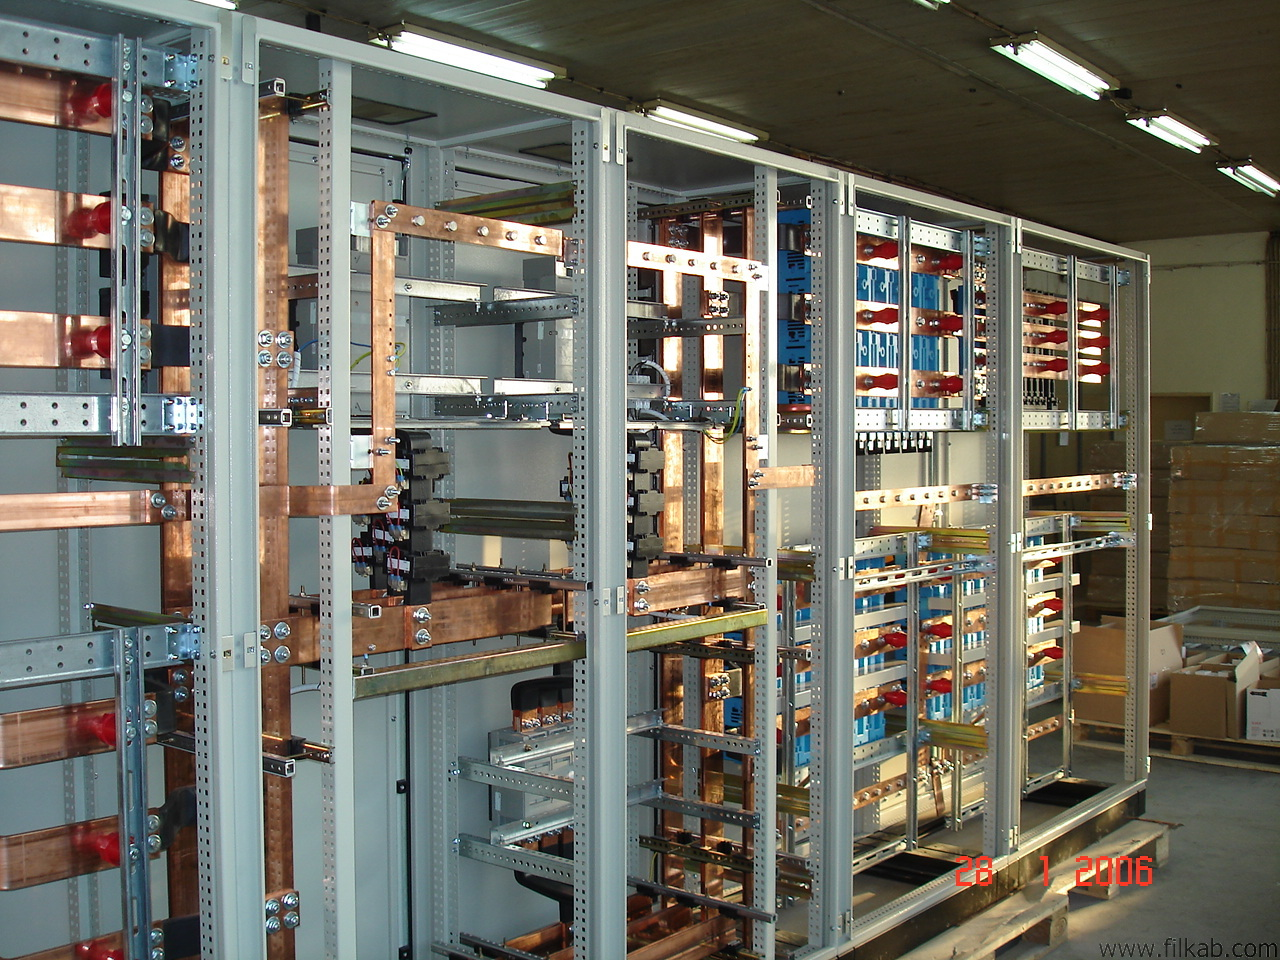 Filkab Products Engineering Electrical Switchboards